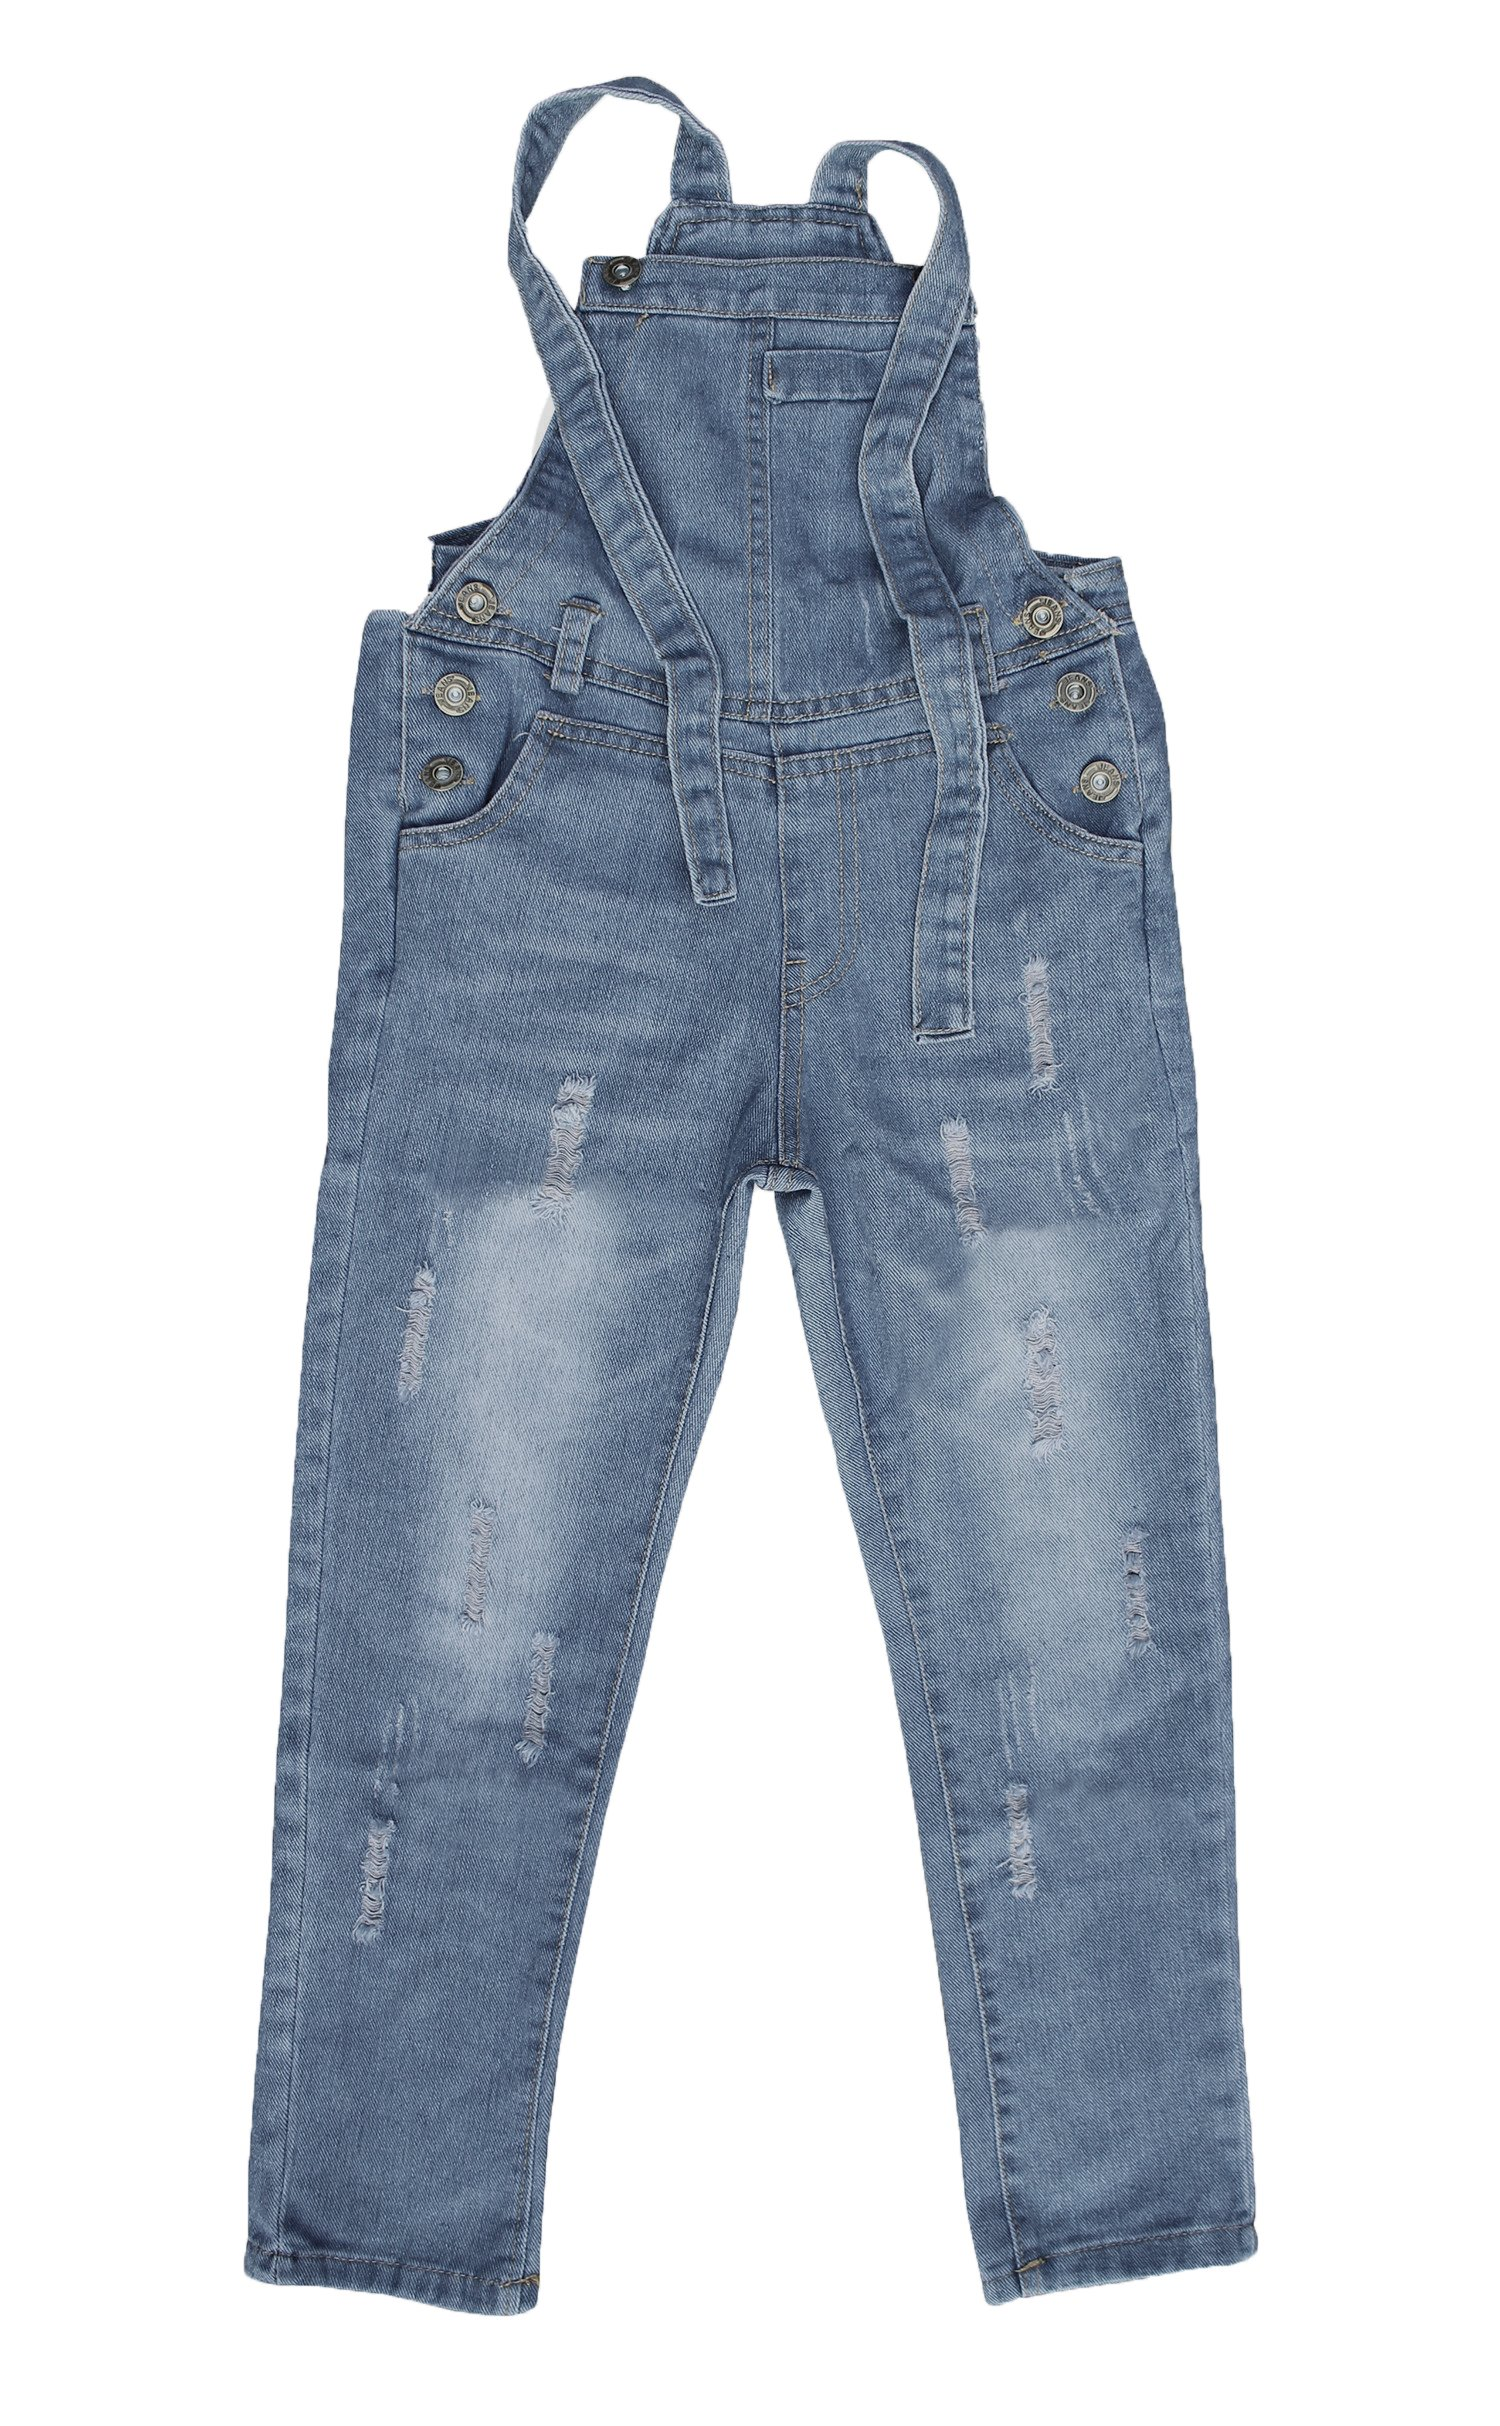 Abalacoco Girls Kids Jeans Adjustable Strap Ripped Holes Denim Overalls Jumpsuits Pants (10-11 Years)